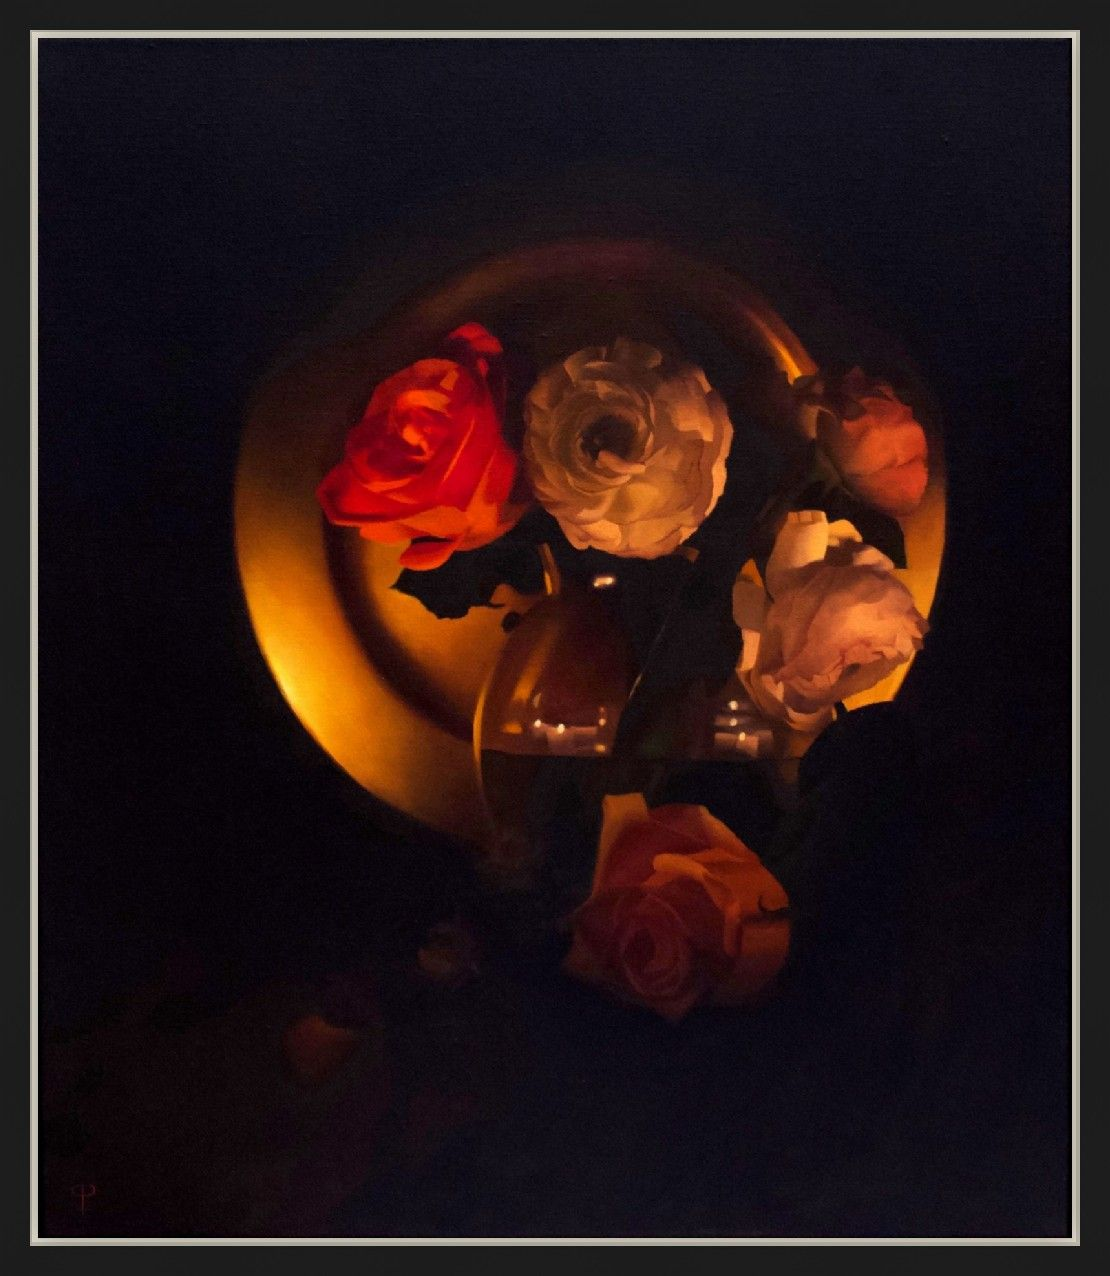 Flowers by Candlelight III by Chris Polunin